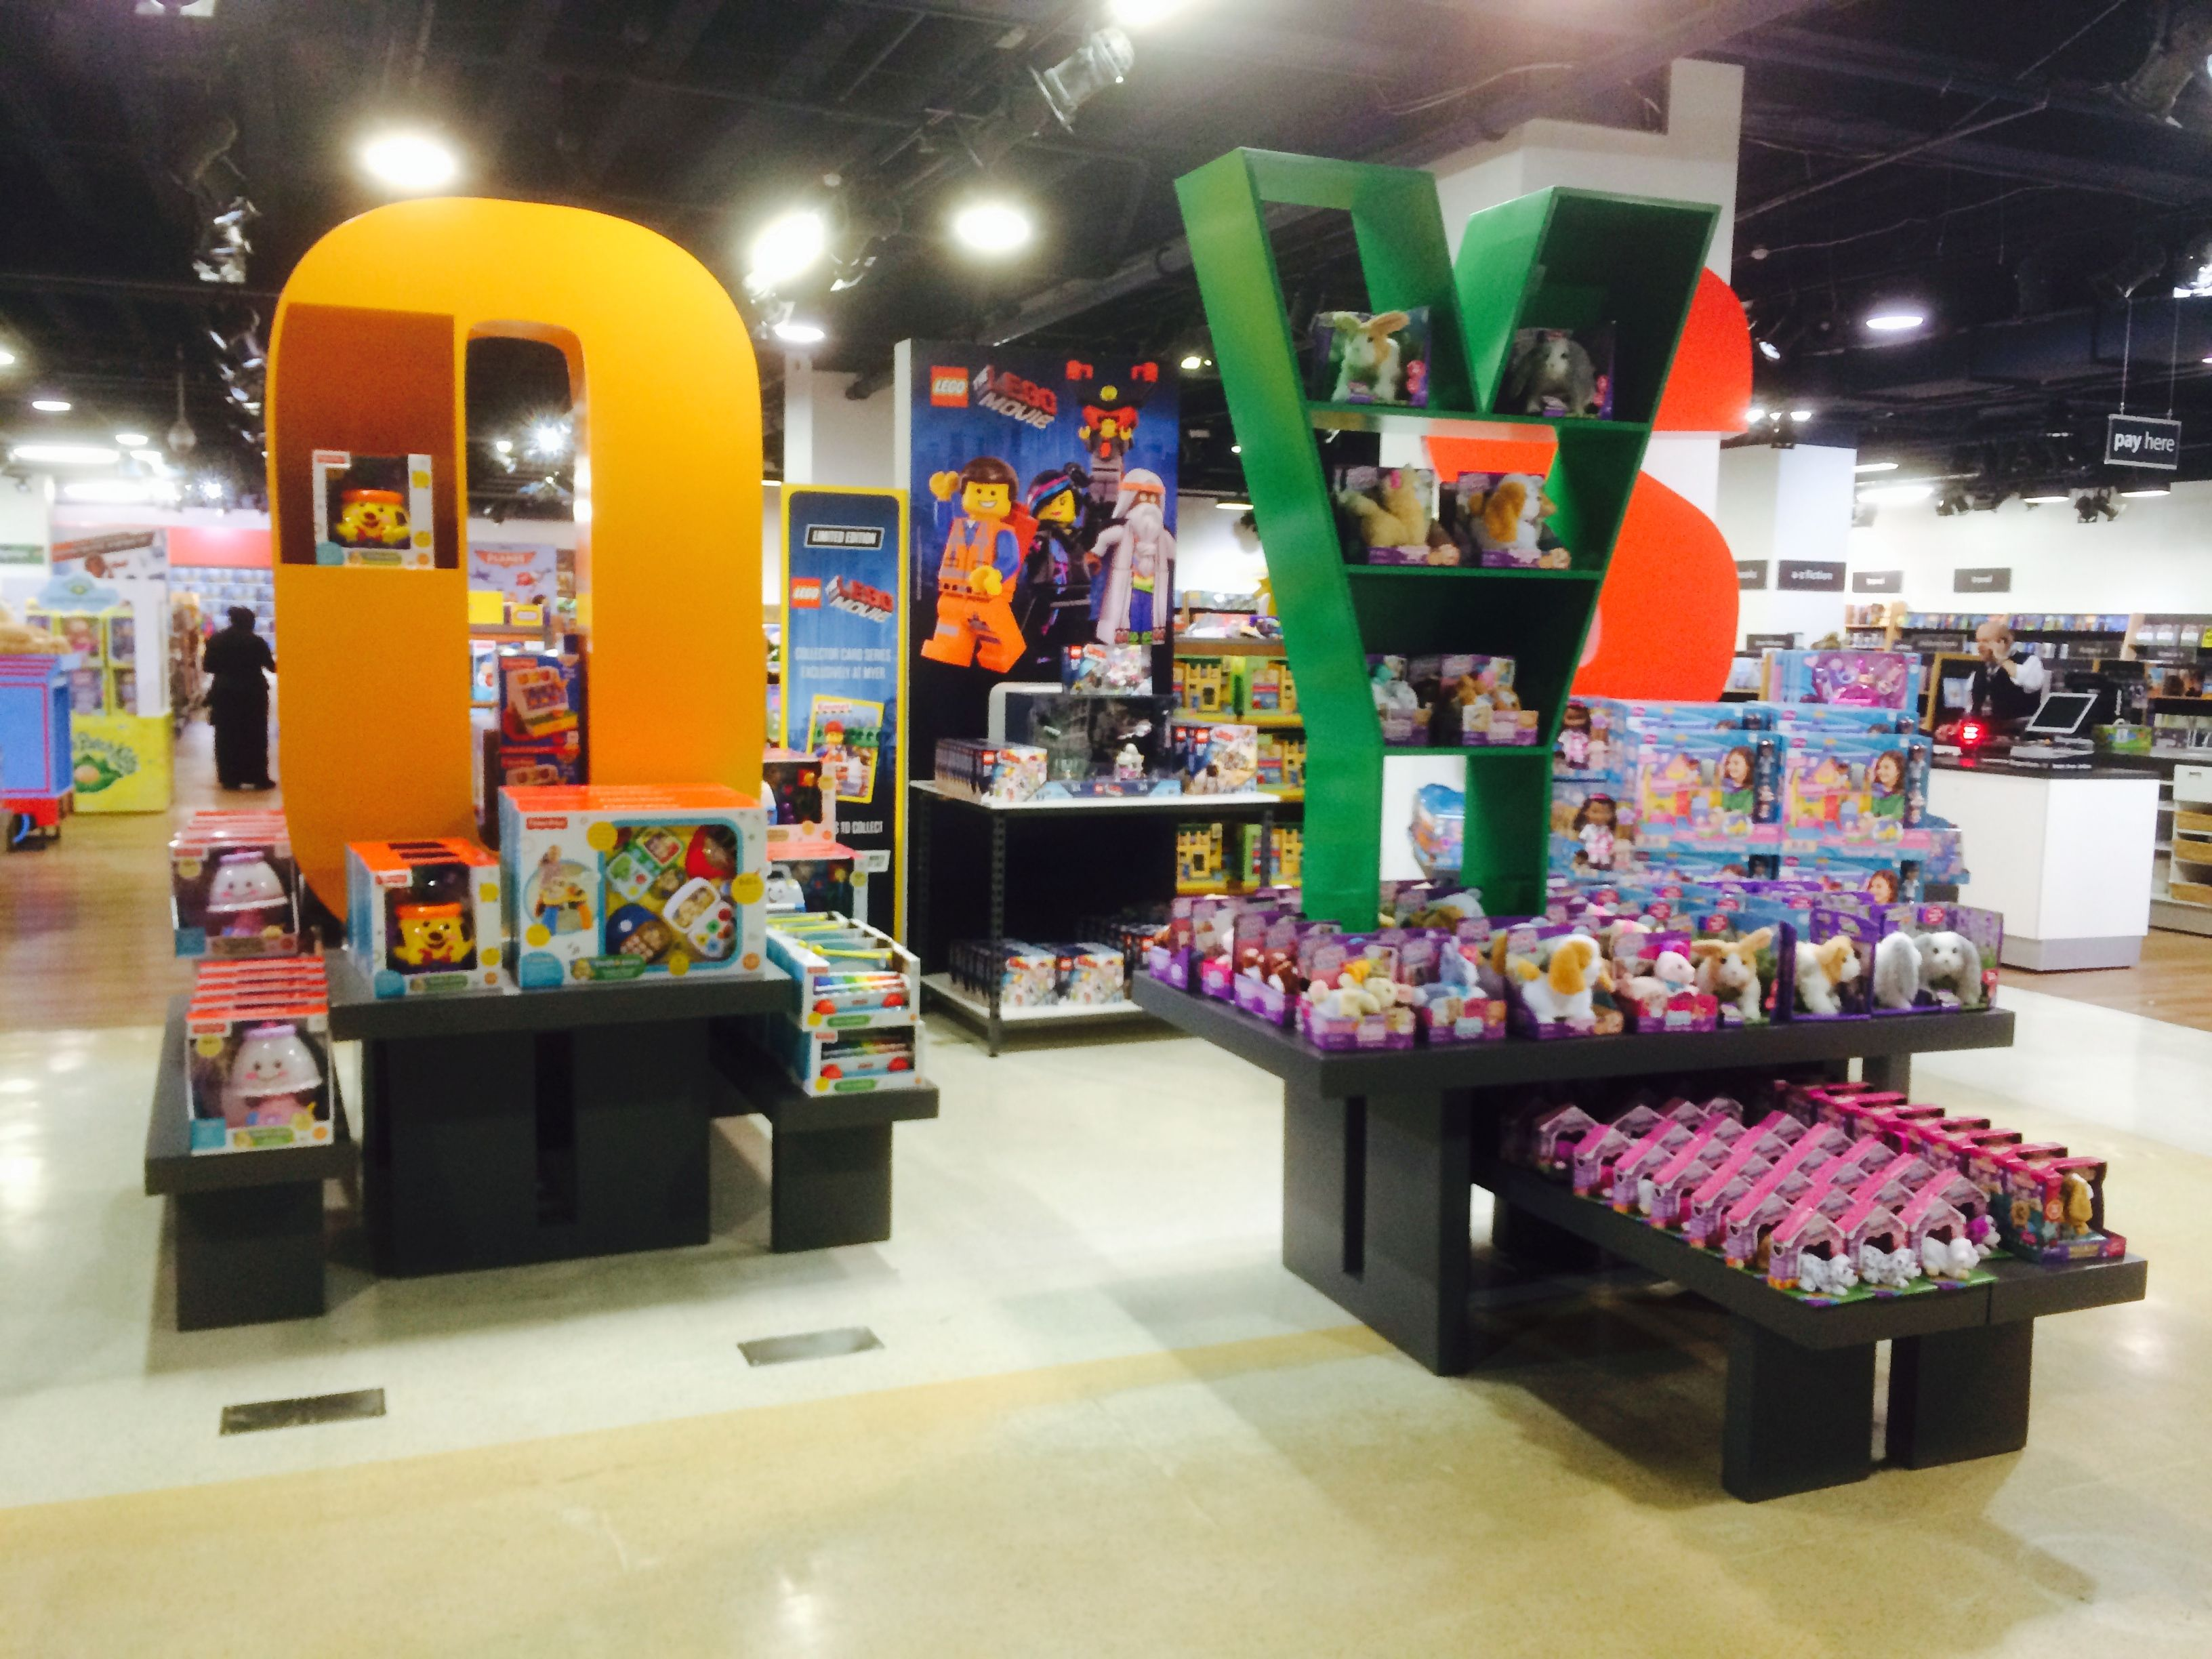 58c5895bb94ce Myer - Department Store - Sydney - Toys - Layout - Landscape - Visual  Merchandising - www.clearretailgroup.eu